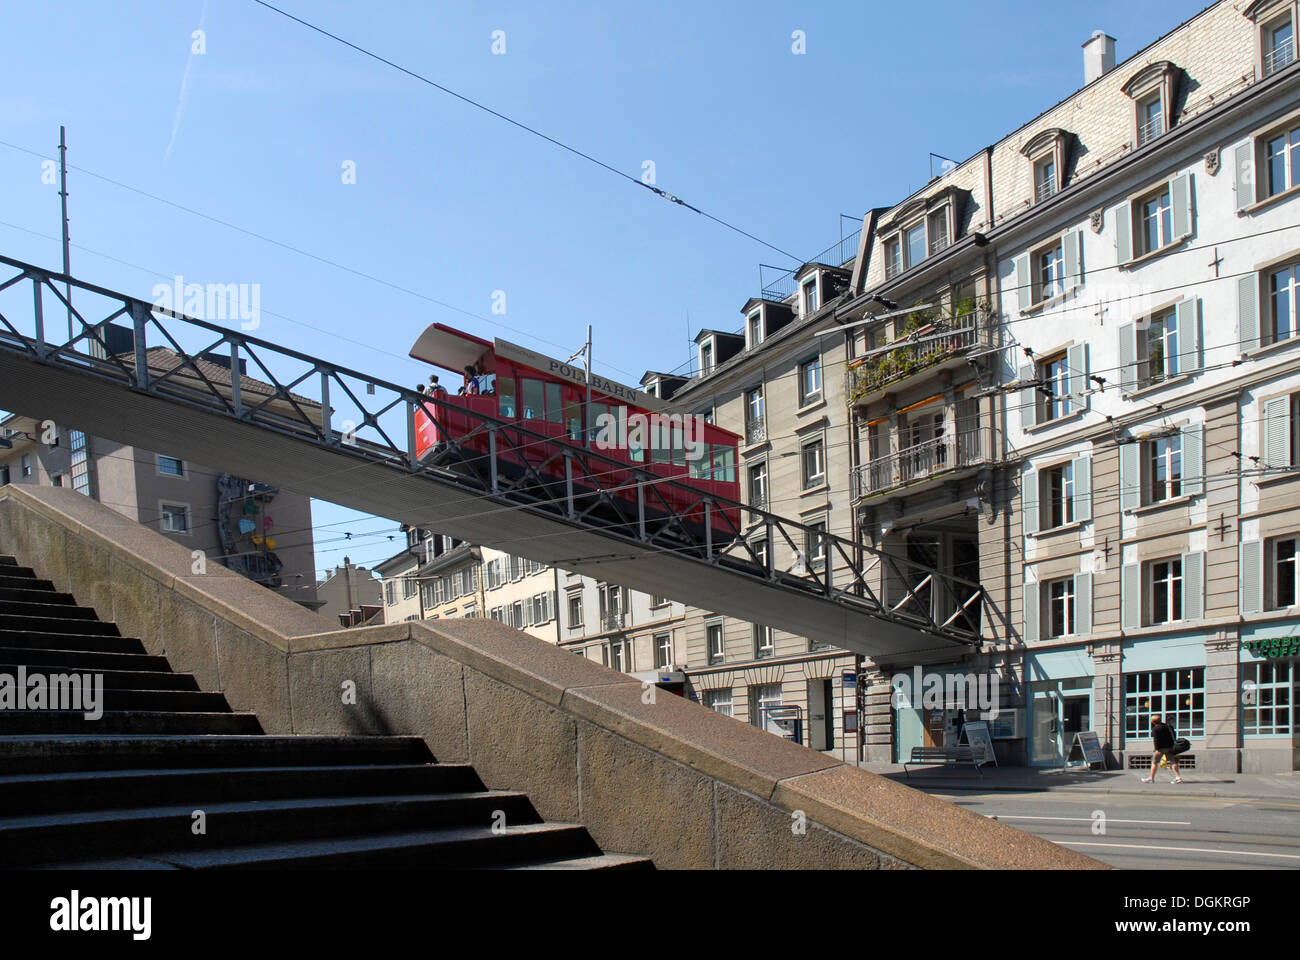 Polybahn, funicular railway, Zurich, Switzerland, Europe - Stock Image